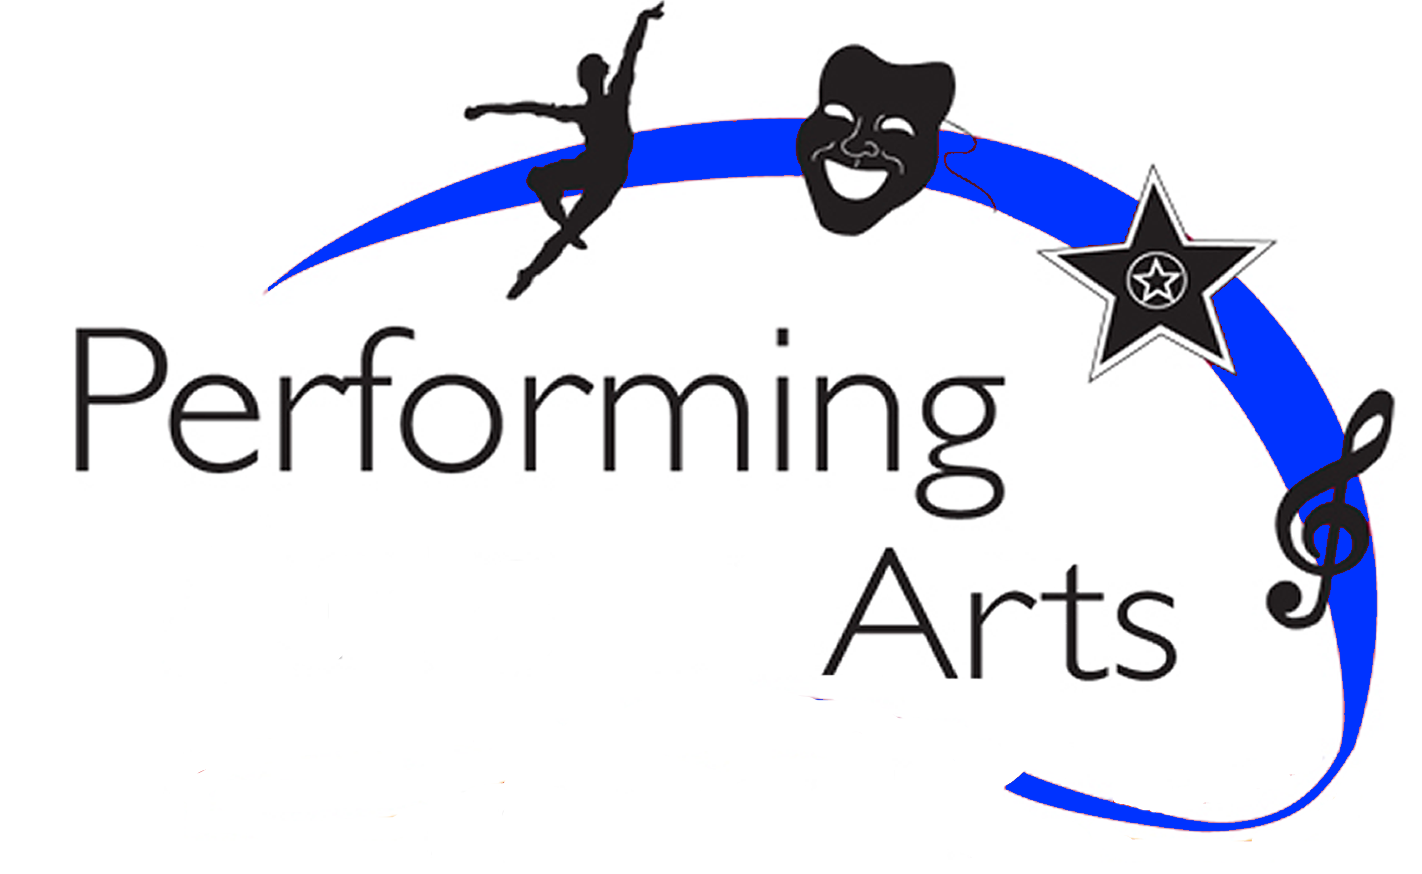 Arts drama and music. Art clipart performing art